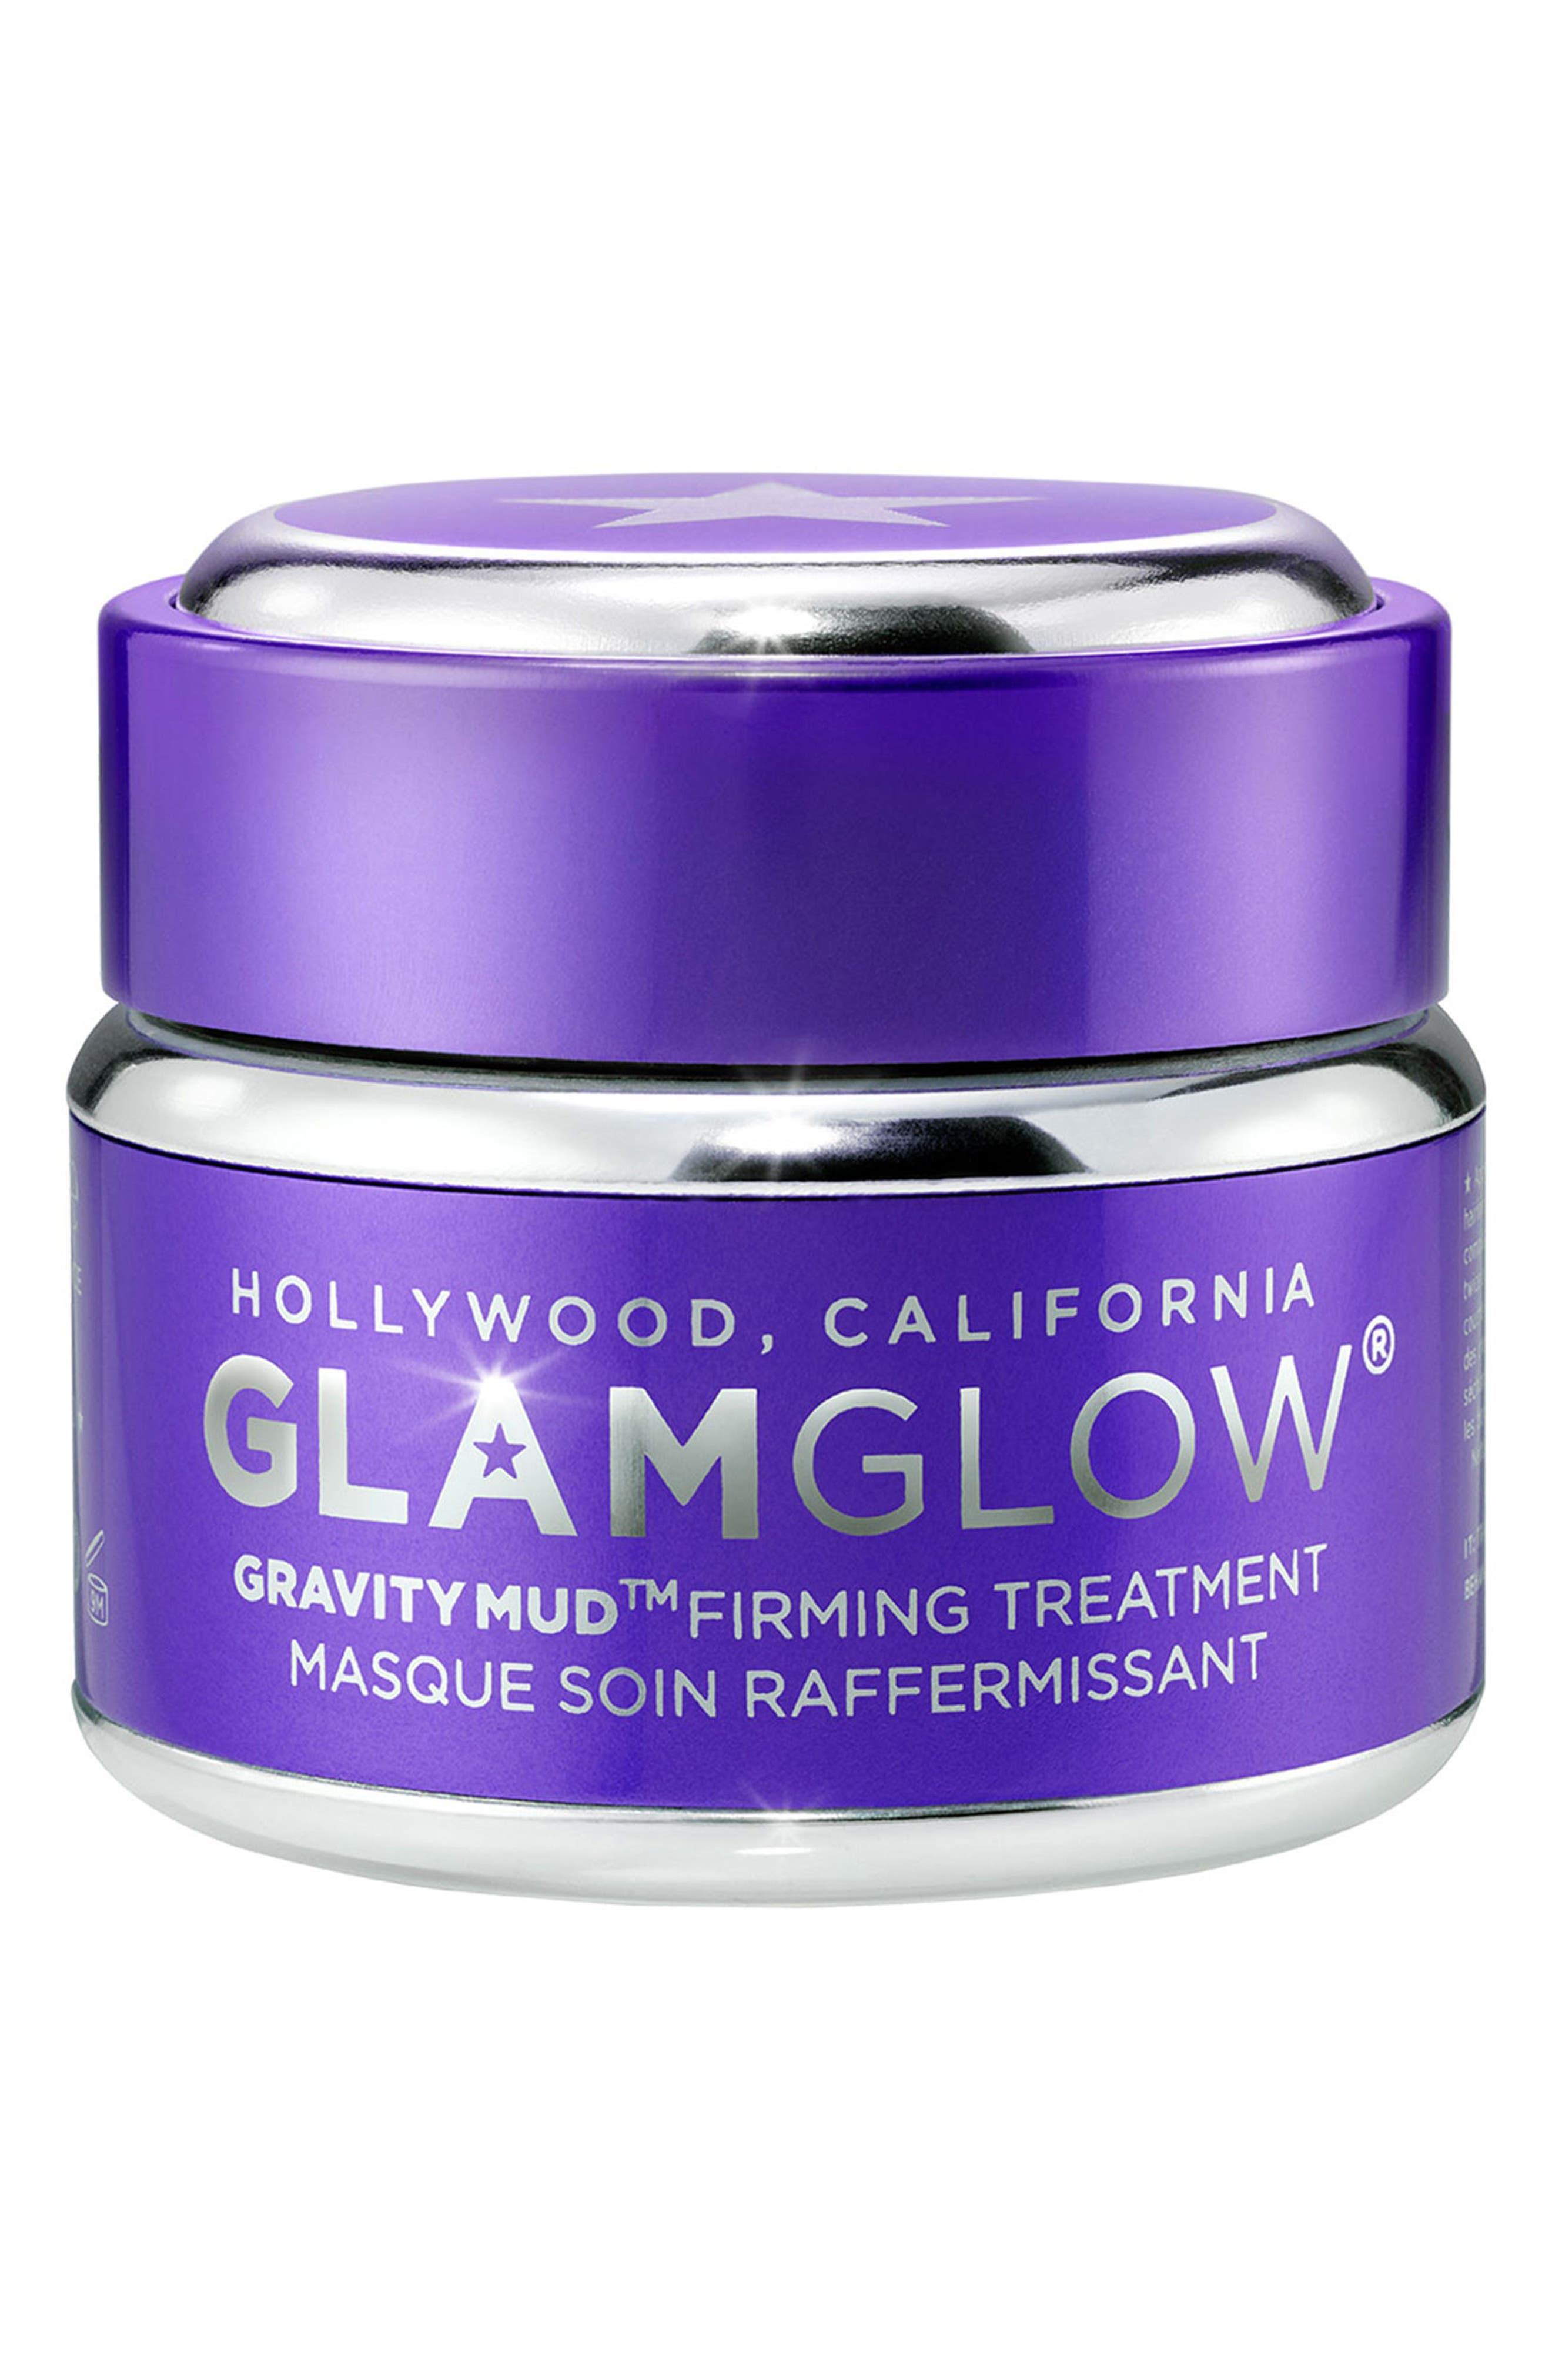 GRAVITYMUD<sup>™</sup> Firming Treatment,                         Main,                         color, No Color